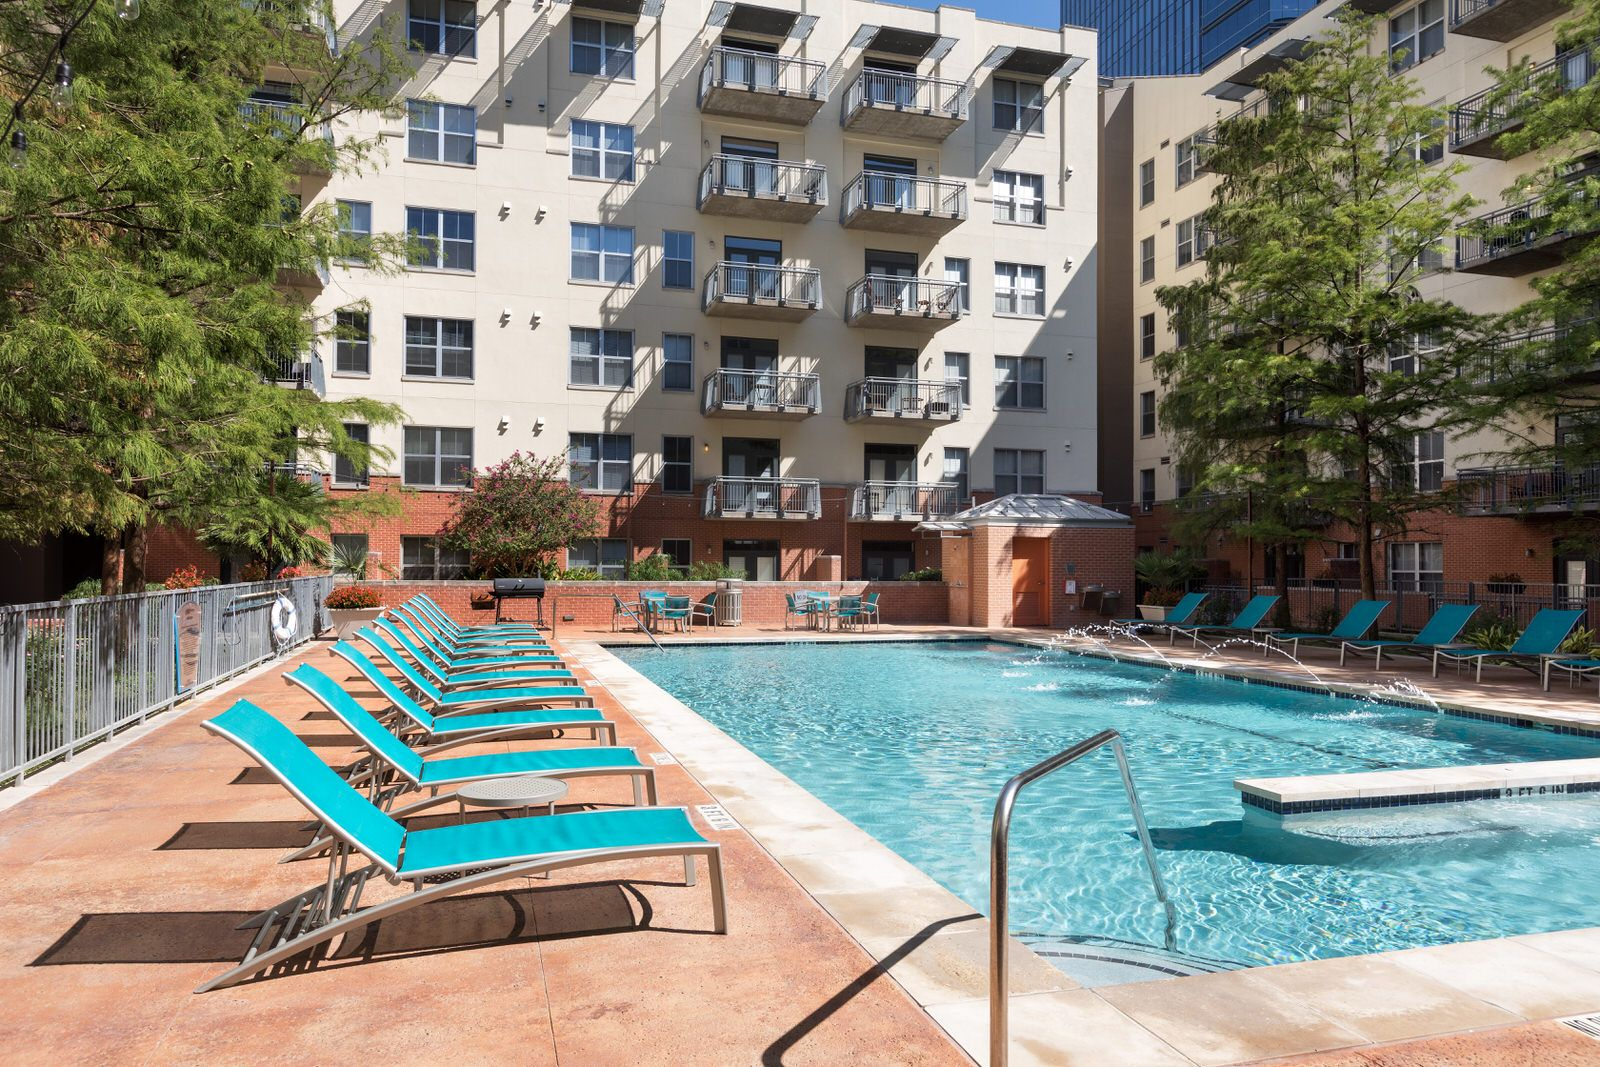 Pool time! (With images) | Downtown austin apartments ...